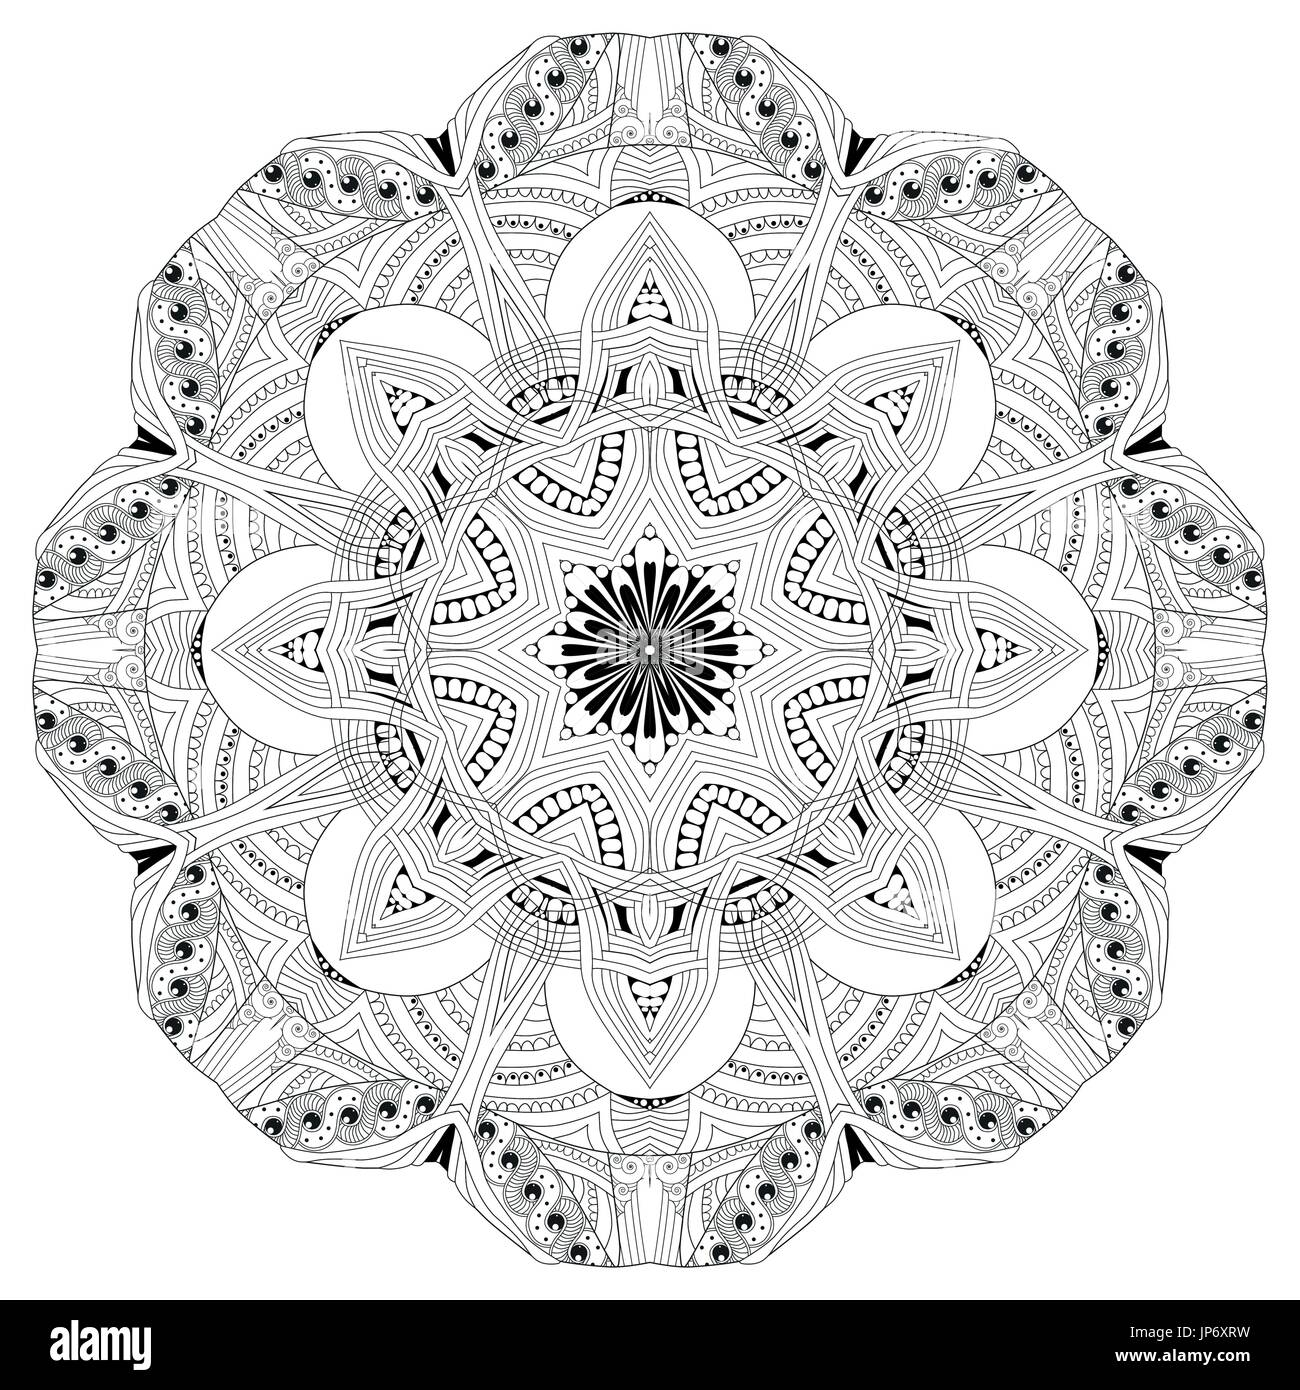 Hand Drawn Zentangle Mandala For Coloring Page Stock Vector Art